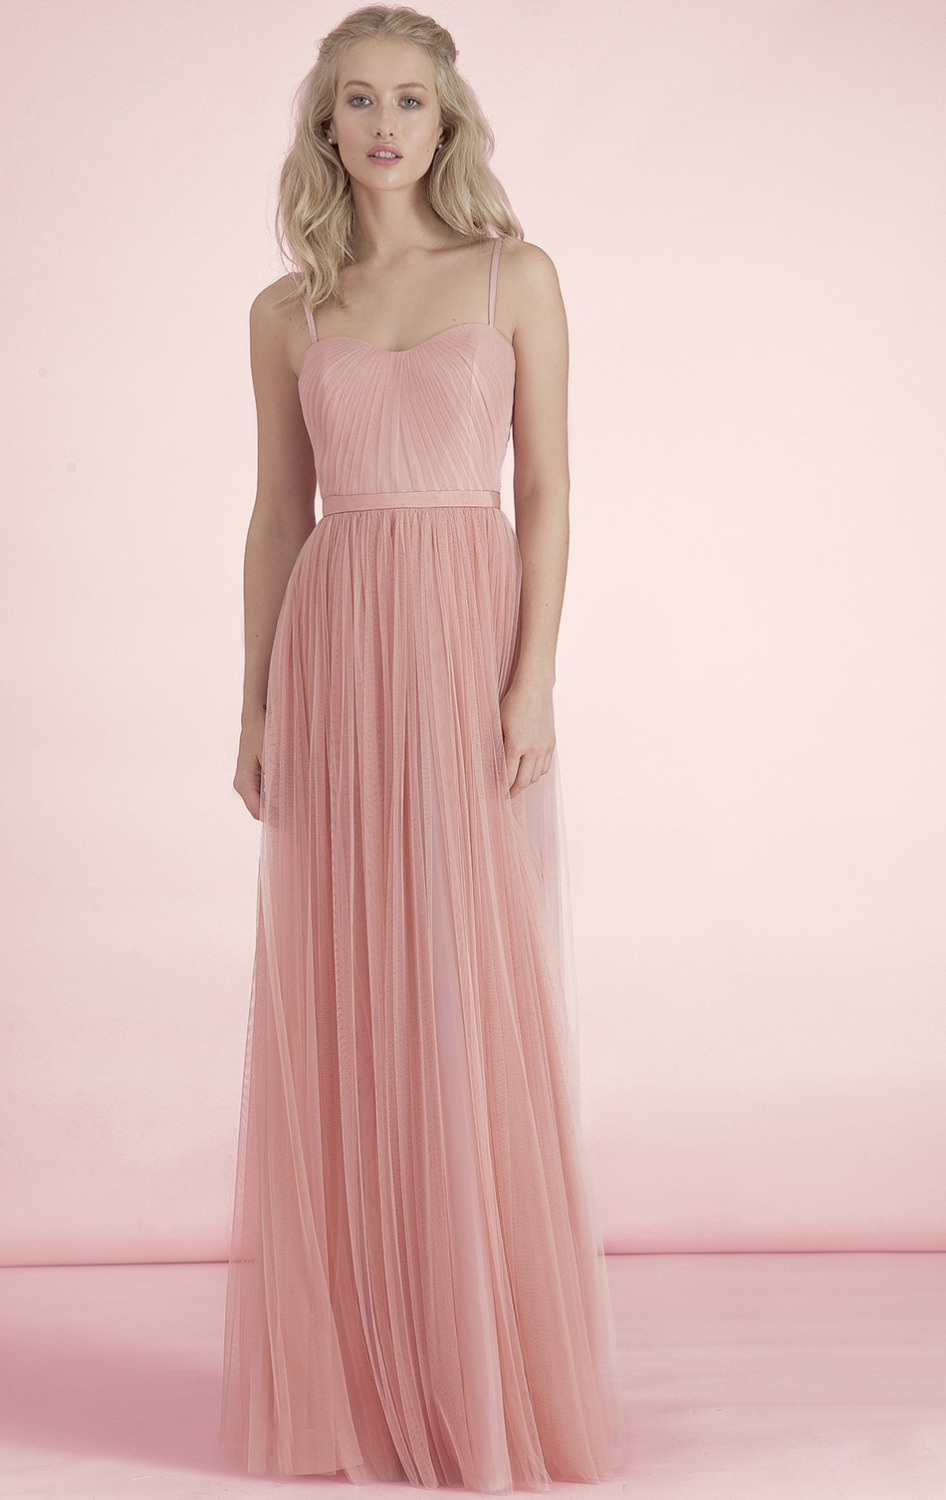 2015 cheap bridesmaid dresses under 50 tulle long nude pink blush 2015 cheap bridesmaid dresses under 50 tulle long nude pink blush bridesmaid dresses wedding party dress maid of honor dress in bridesmaid dresses from ombrellifo Images